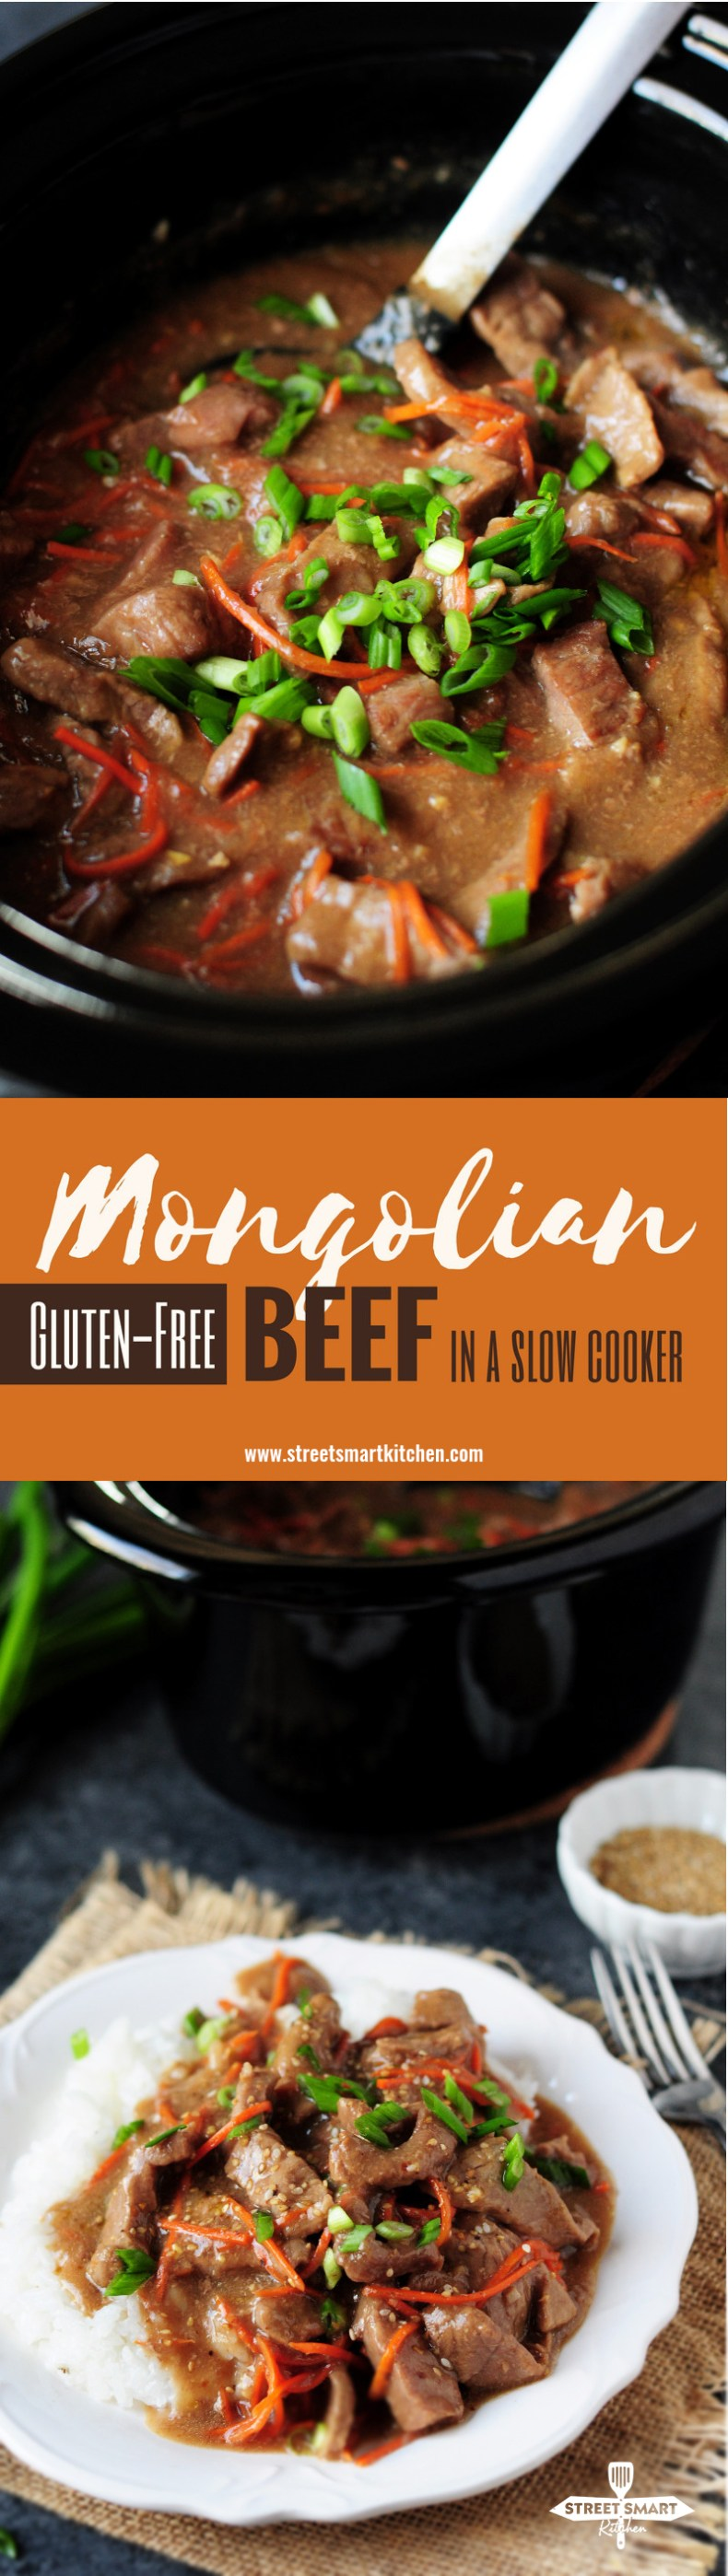 Mongolian beef recipe made gluten free in a slow cooker! This is a perfect recipe for slow cooker beginners or for those who just want a simple dump meal.